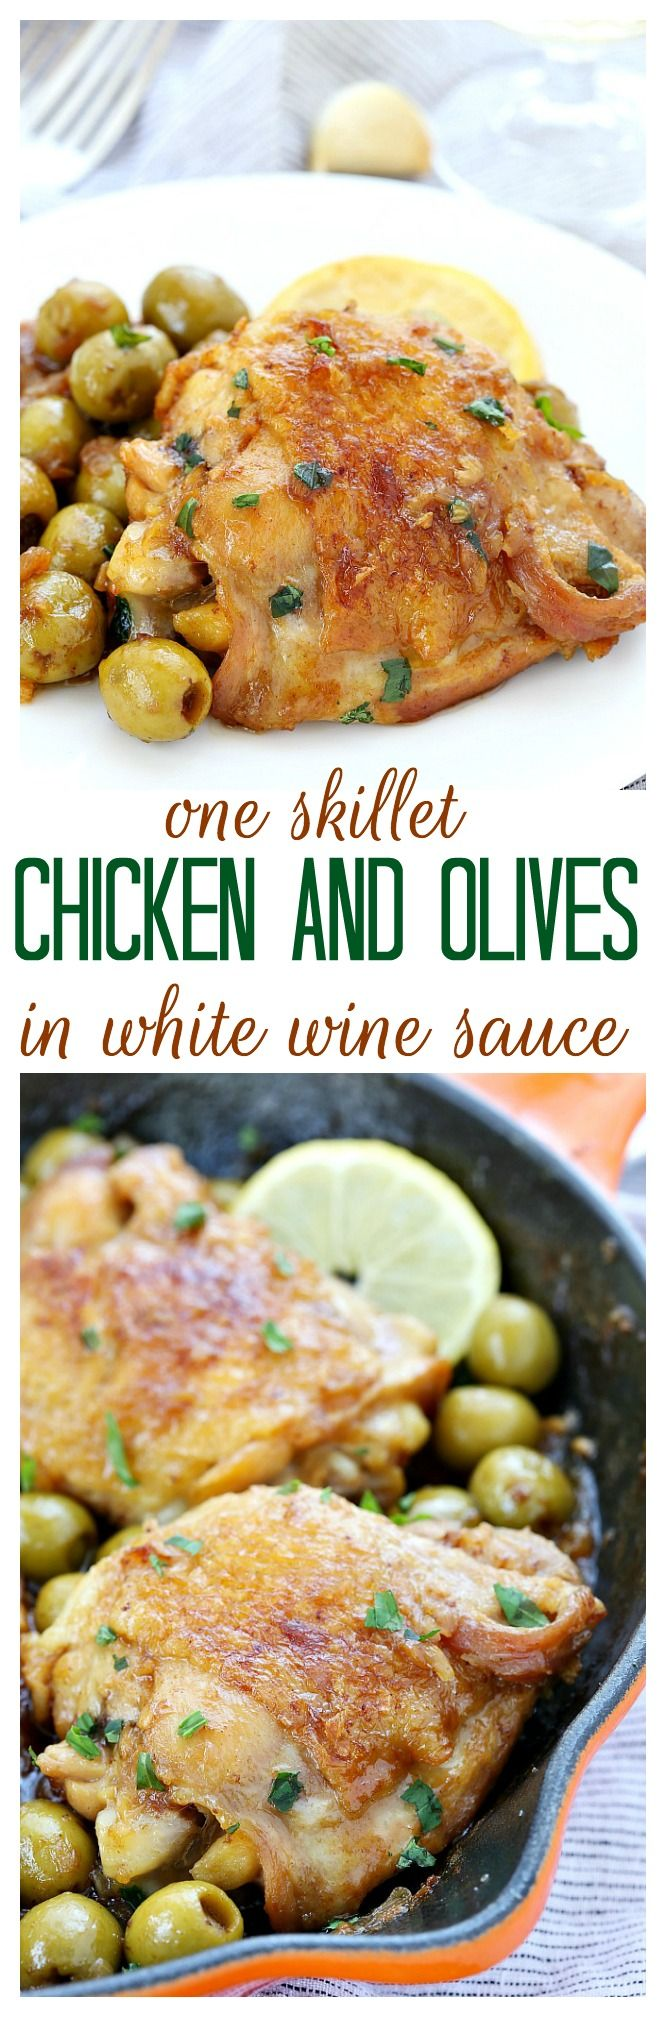 5 ingredients are all you need to make this bright and briny chicken and olives in white wine sauce. Good taste does not always depend on a lot of ingredients.